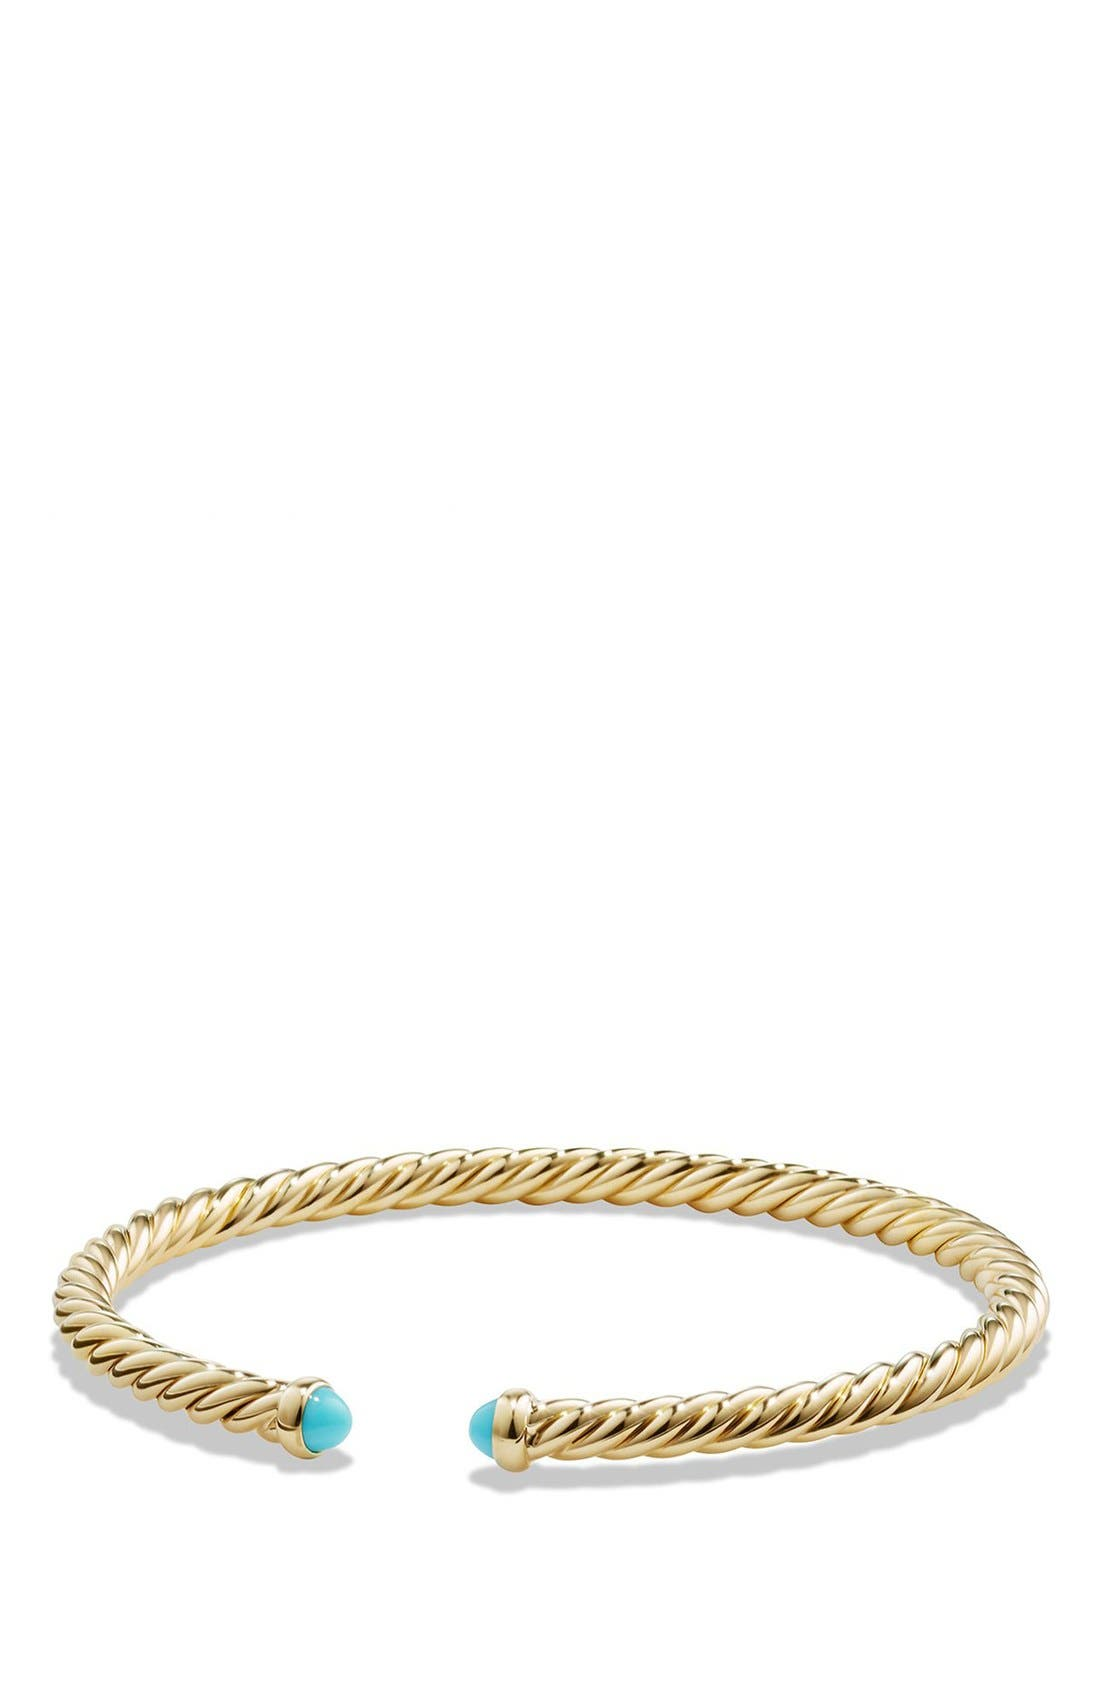 Cable Spira Bracelet with Semiprecious Stones in 18K Gold,                         Main,                         color, TURQUOISE